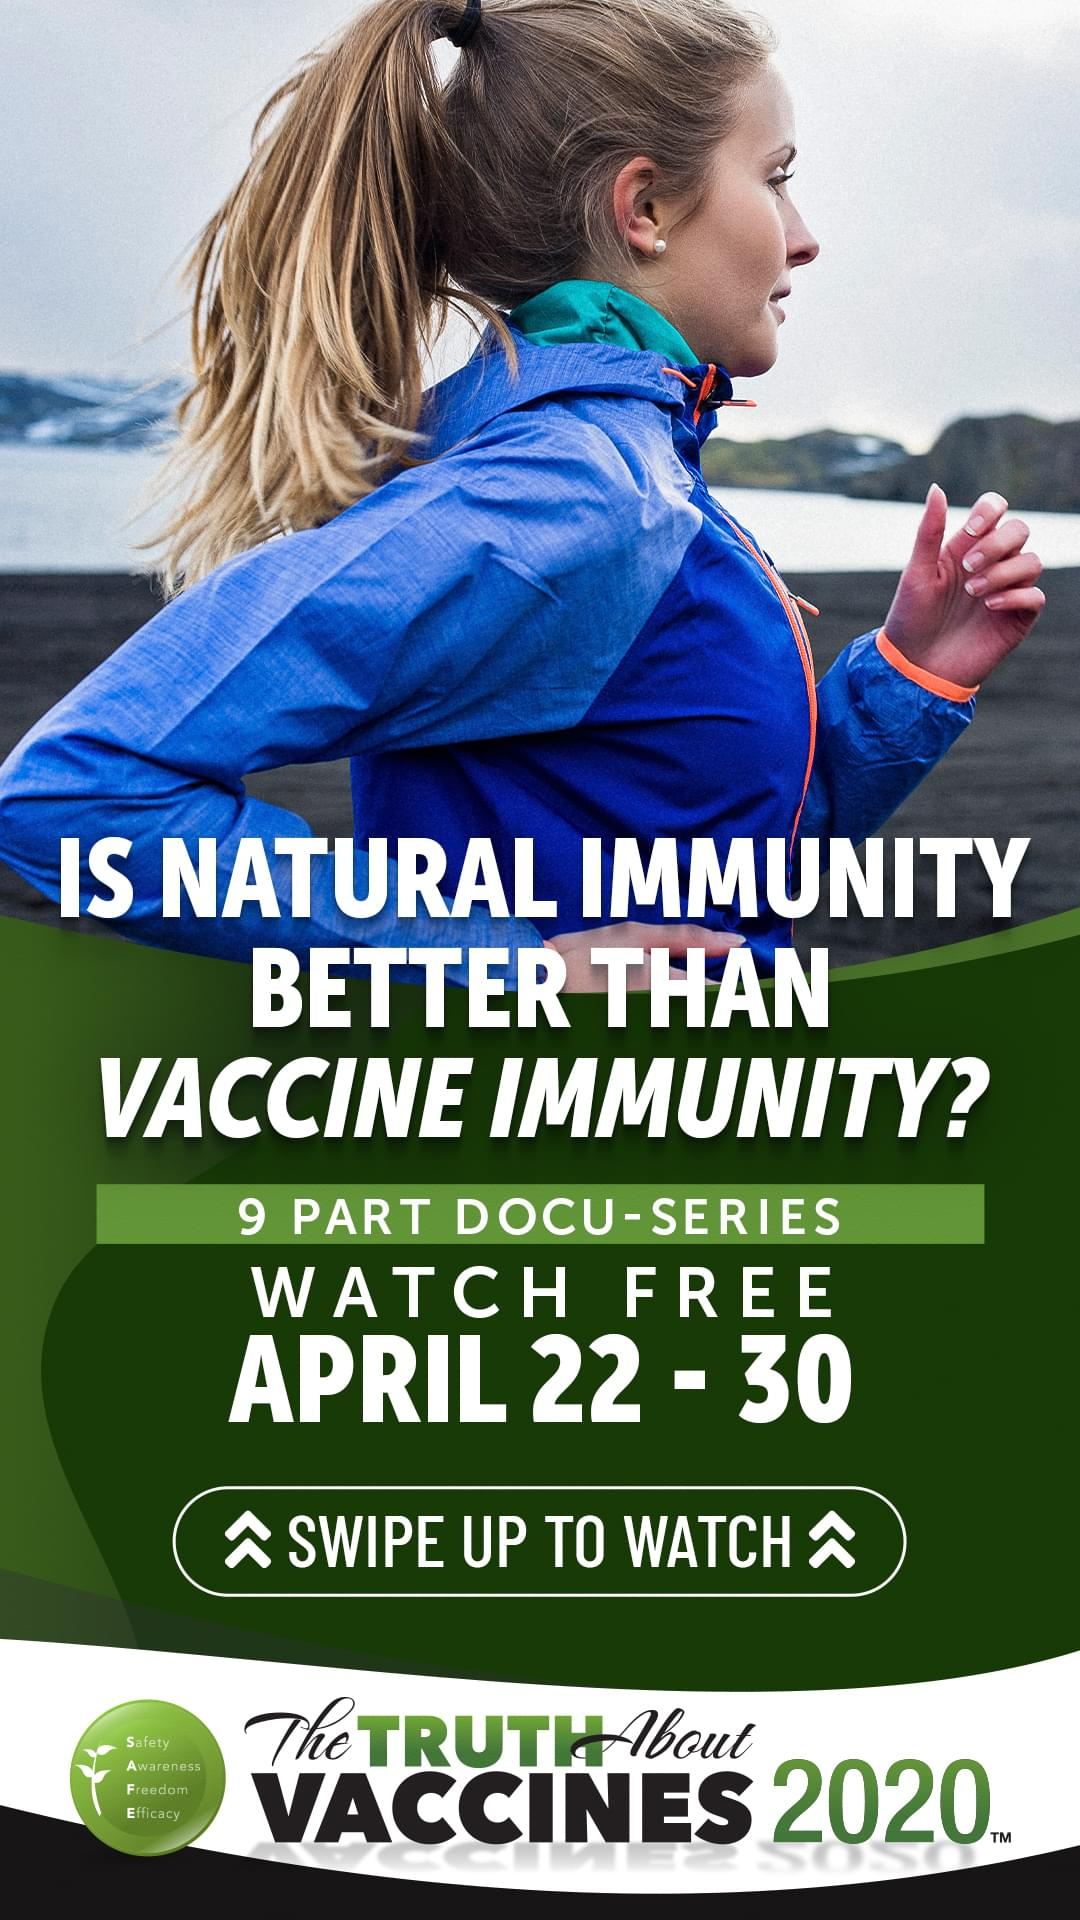 TTAV-Prelaunch-Natural_vs_Vaccine-IG-1080x1920-min